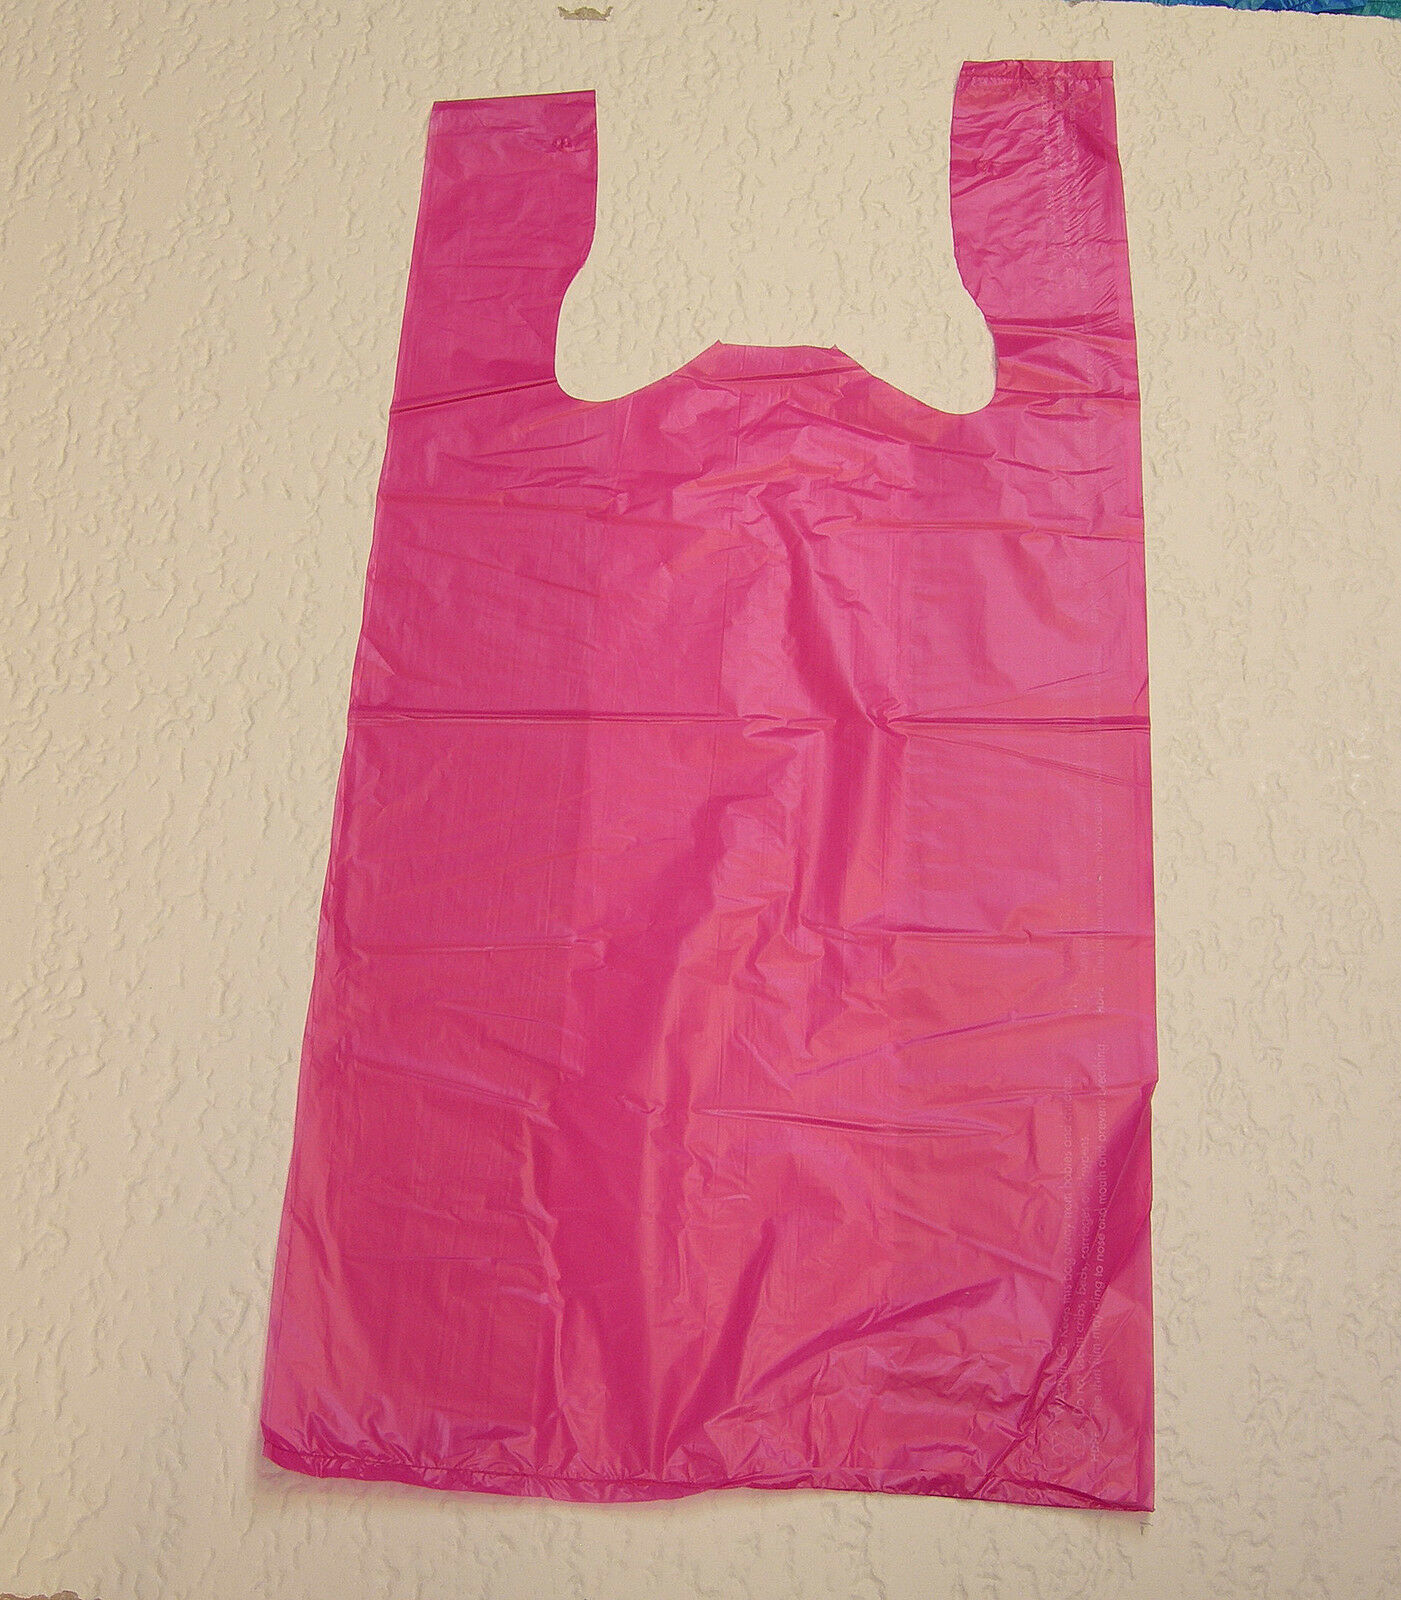 как выглядит Товарная сумка Plastic T-Shirt Bags with Handles You Pick Lot & Colors & Size фото